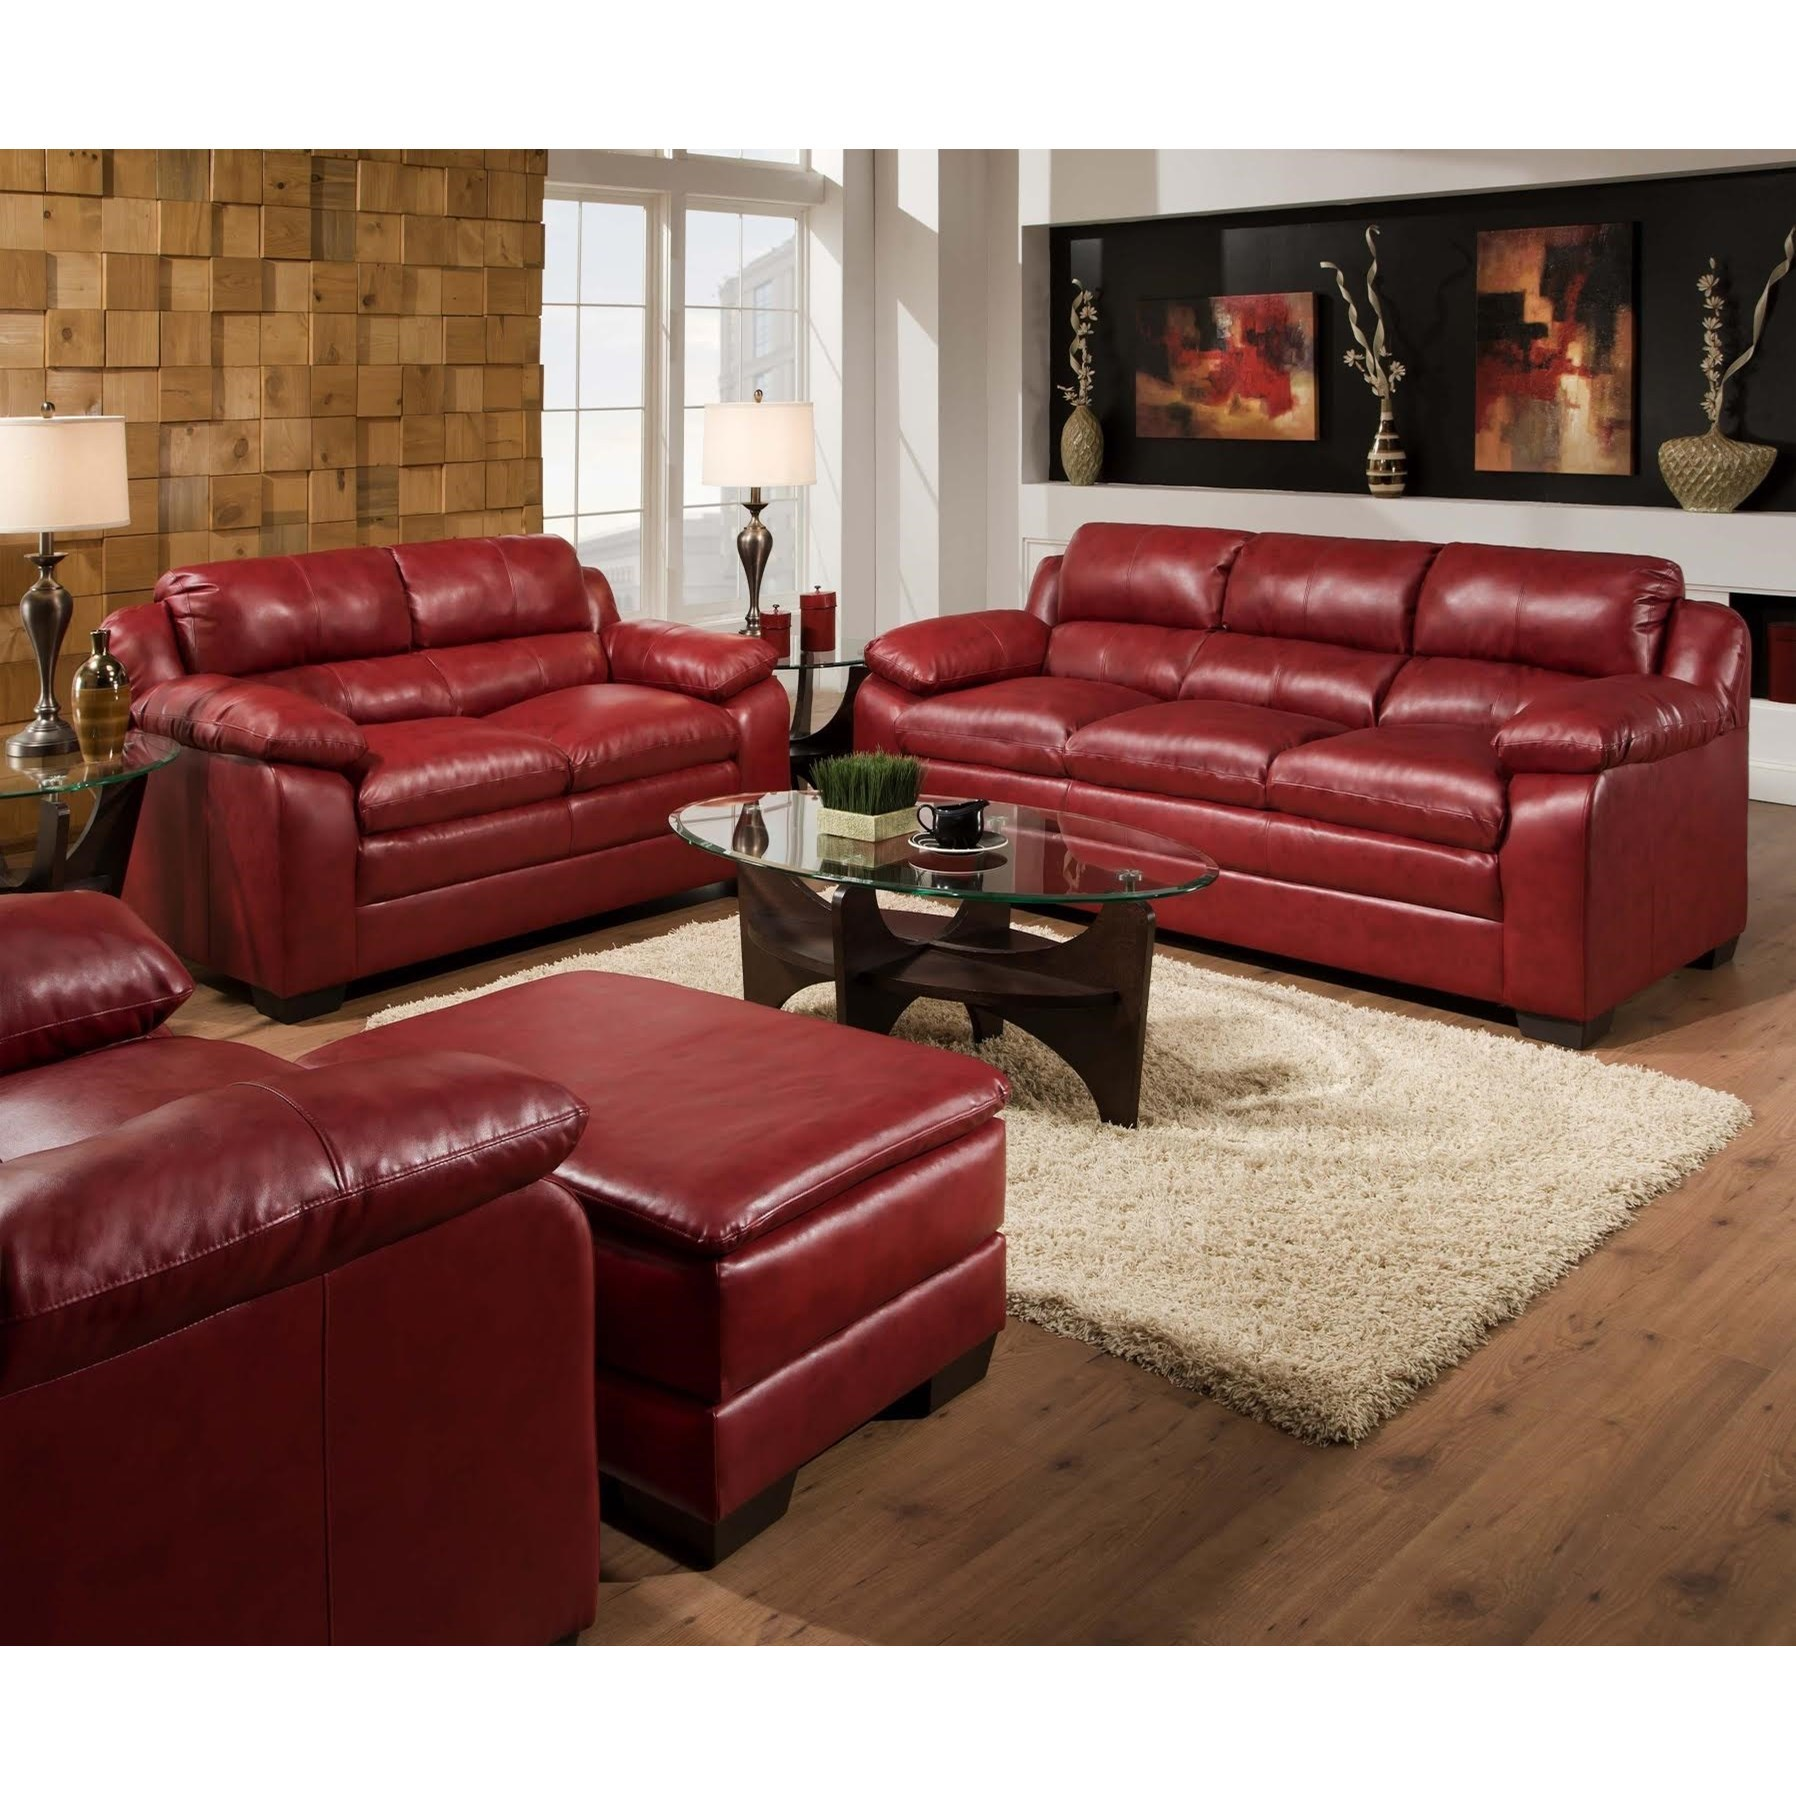 United Furniture Industries 5066 Stationary Sofa and Loveseat Group - Item Number: 5066 Living Room Group 1 Cardinal